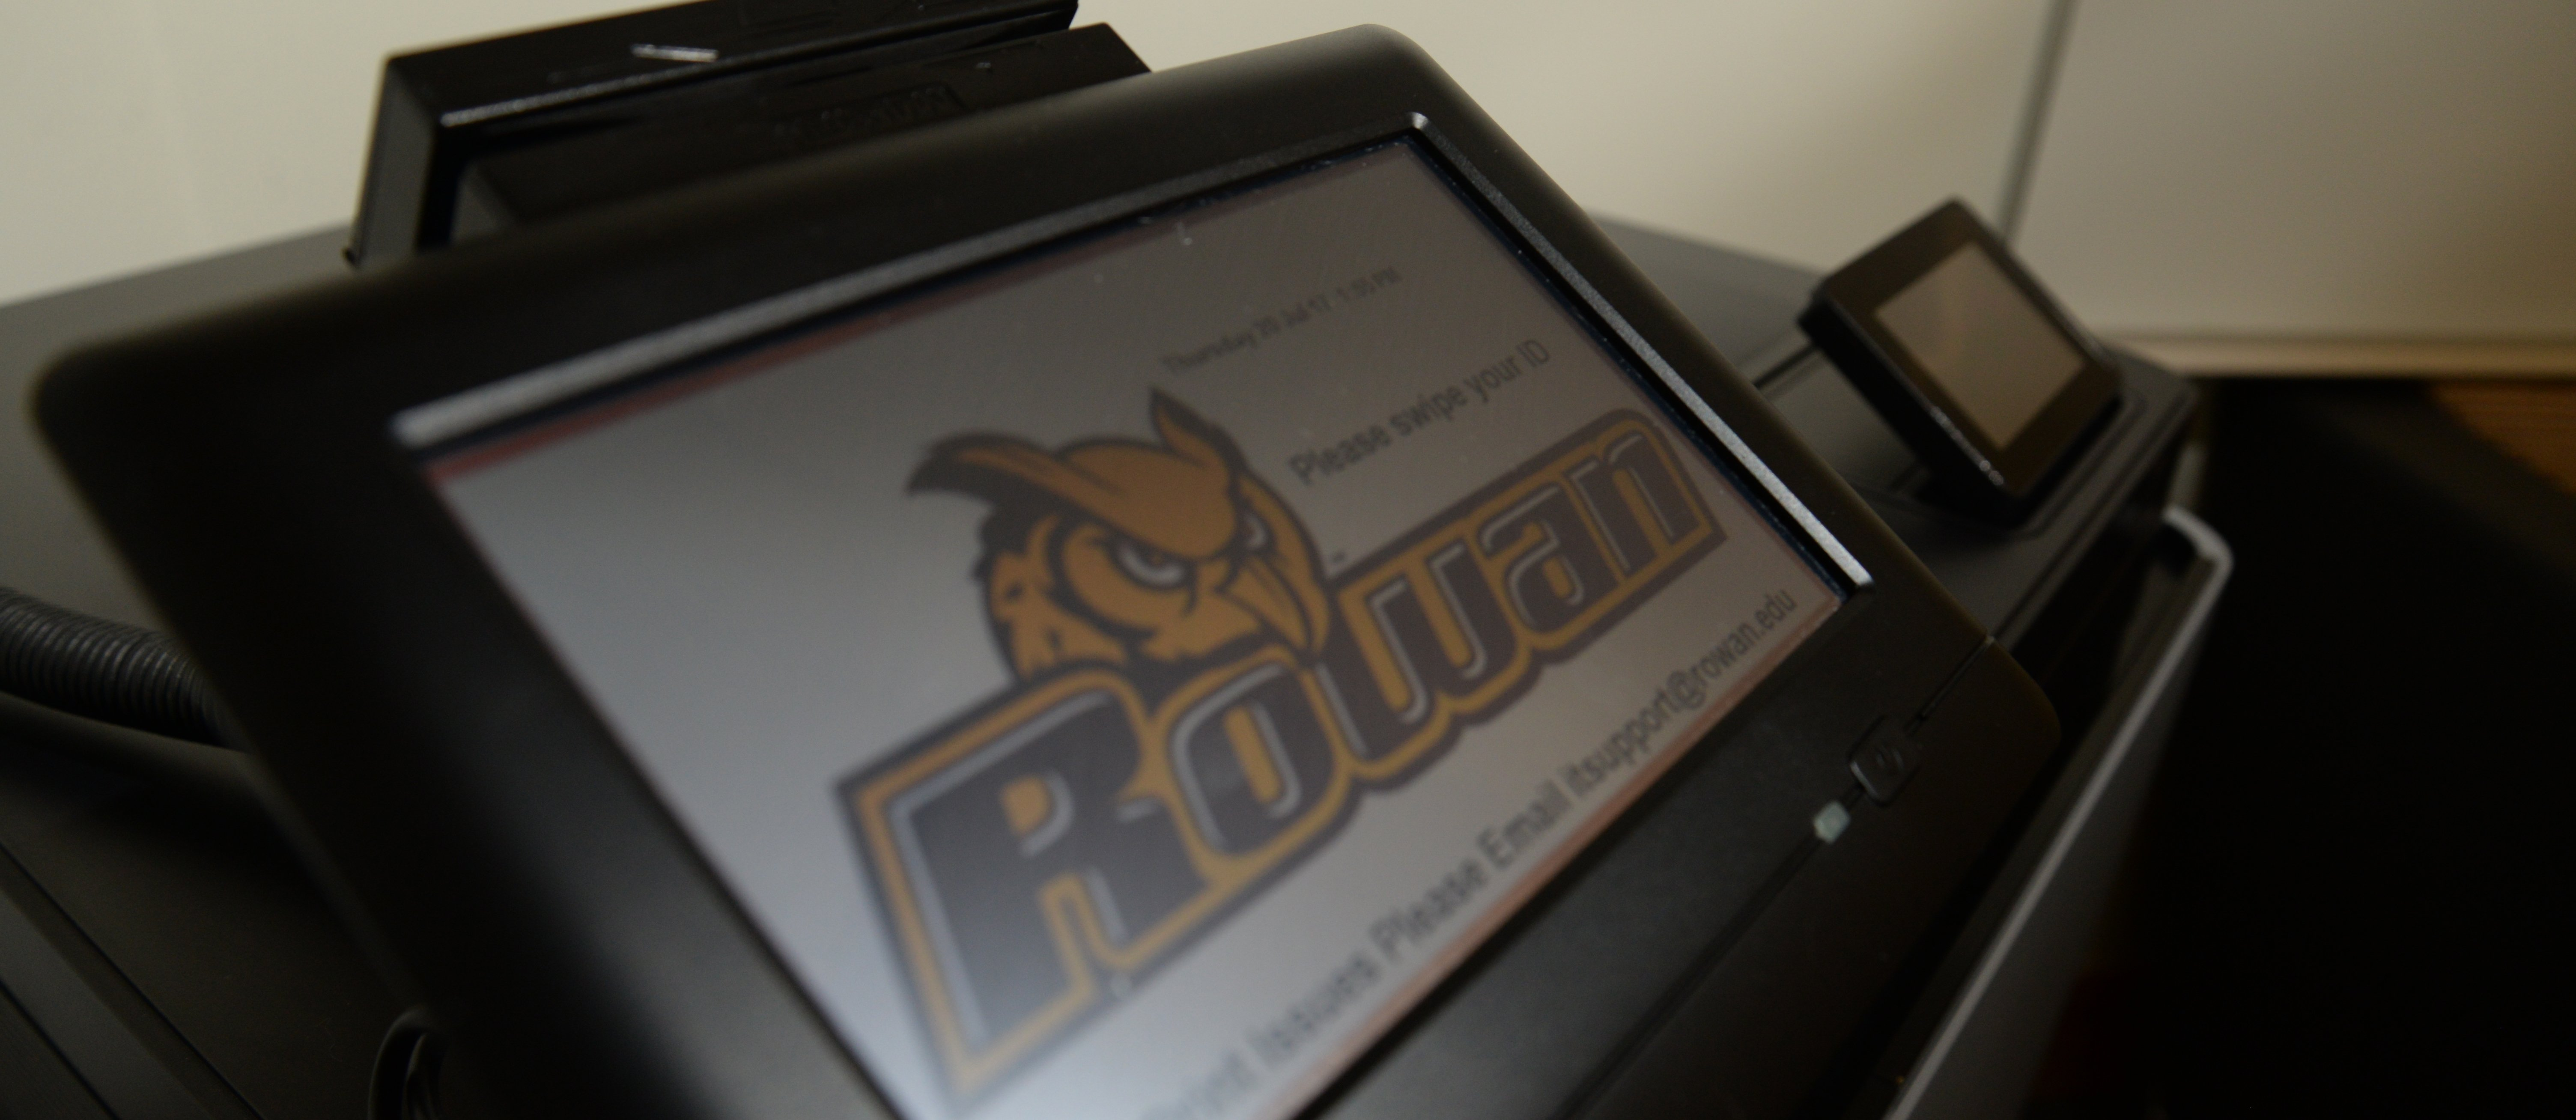 image of a rowan university printing kiosk